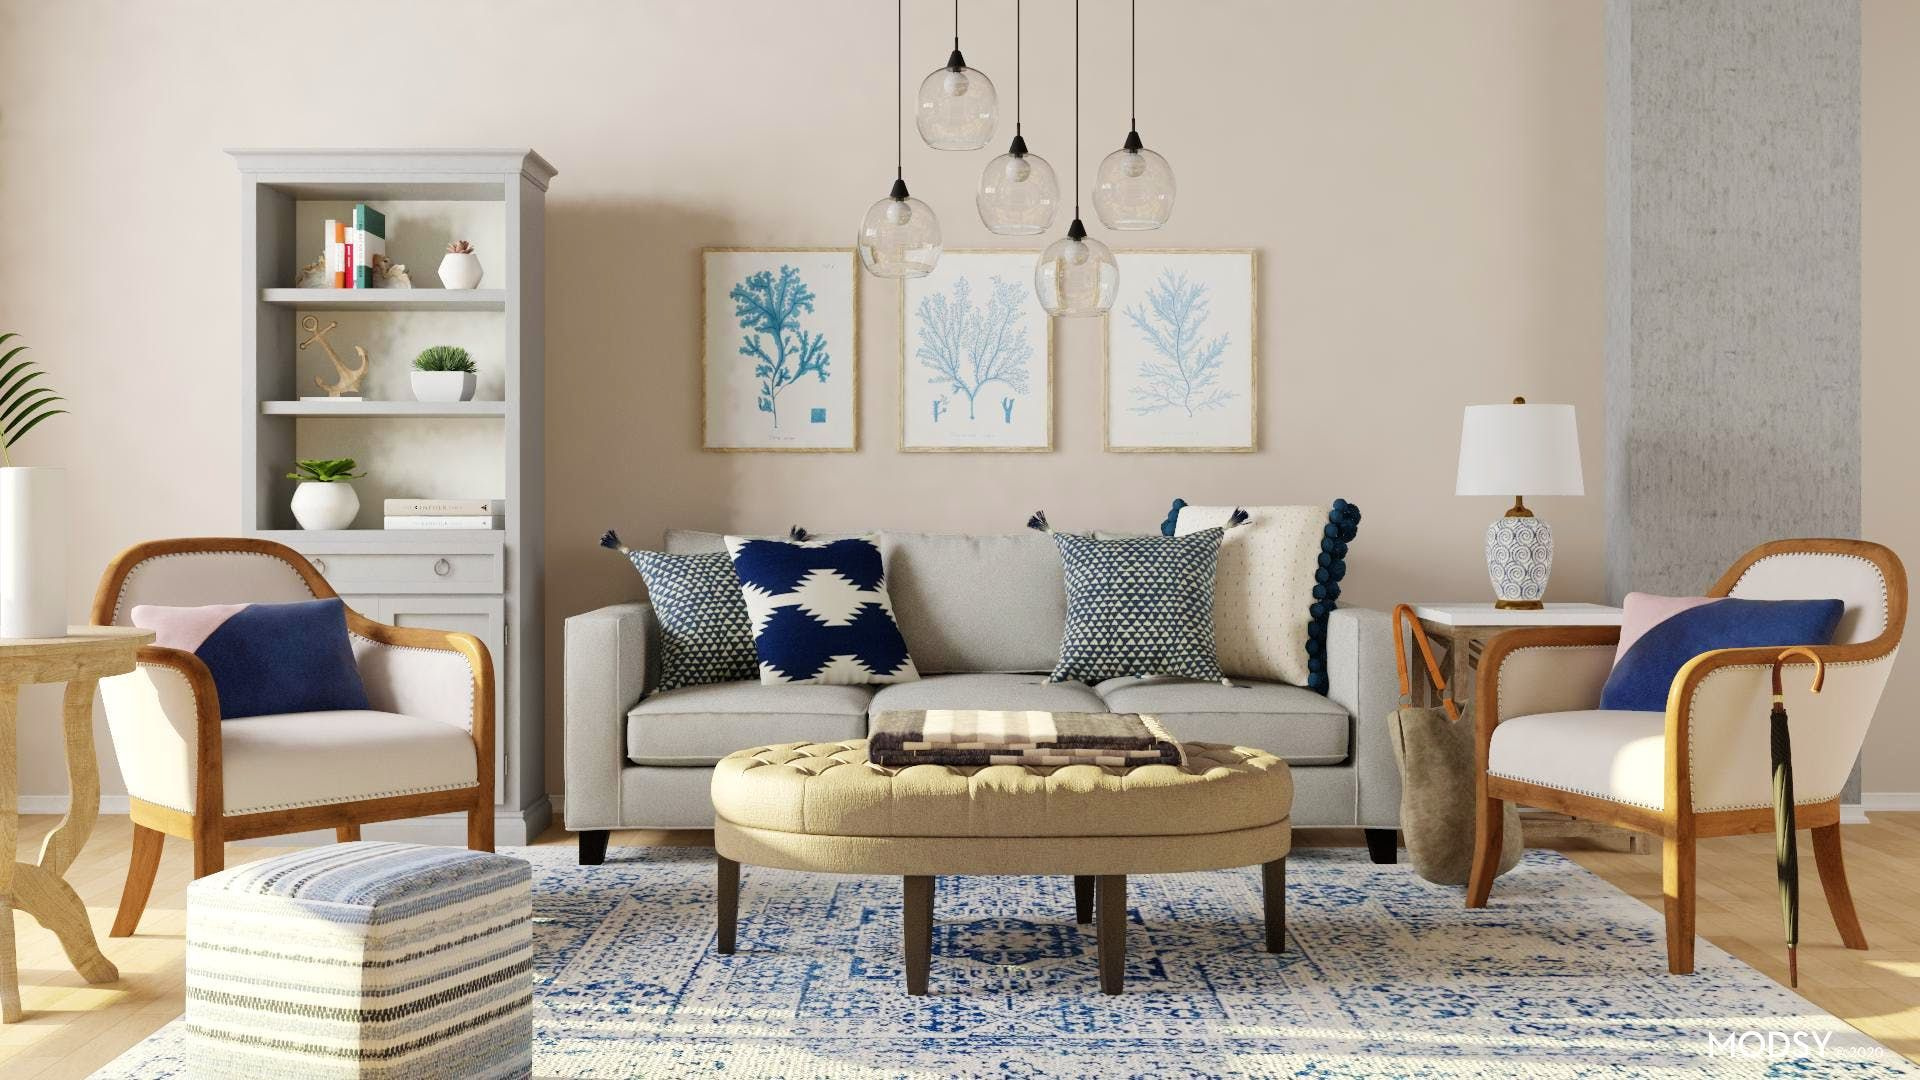 Transitional Living Room Design Ideas And Styles From Modsy Designers In 2020 Transitional Style Living Room Transitional Living Room Design Living Room Designs #transitional #living #room #design